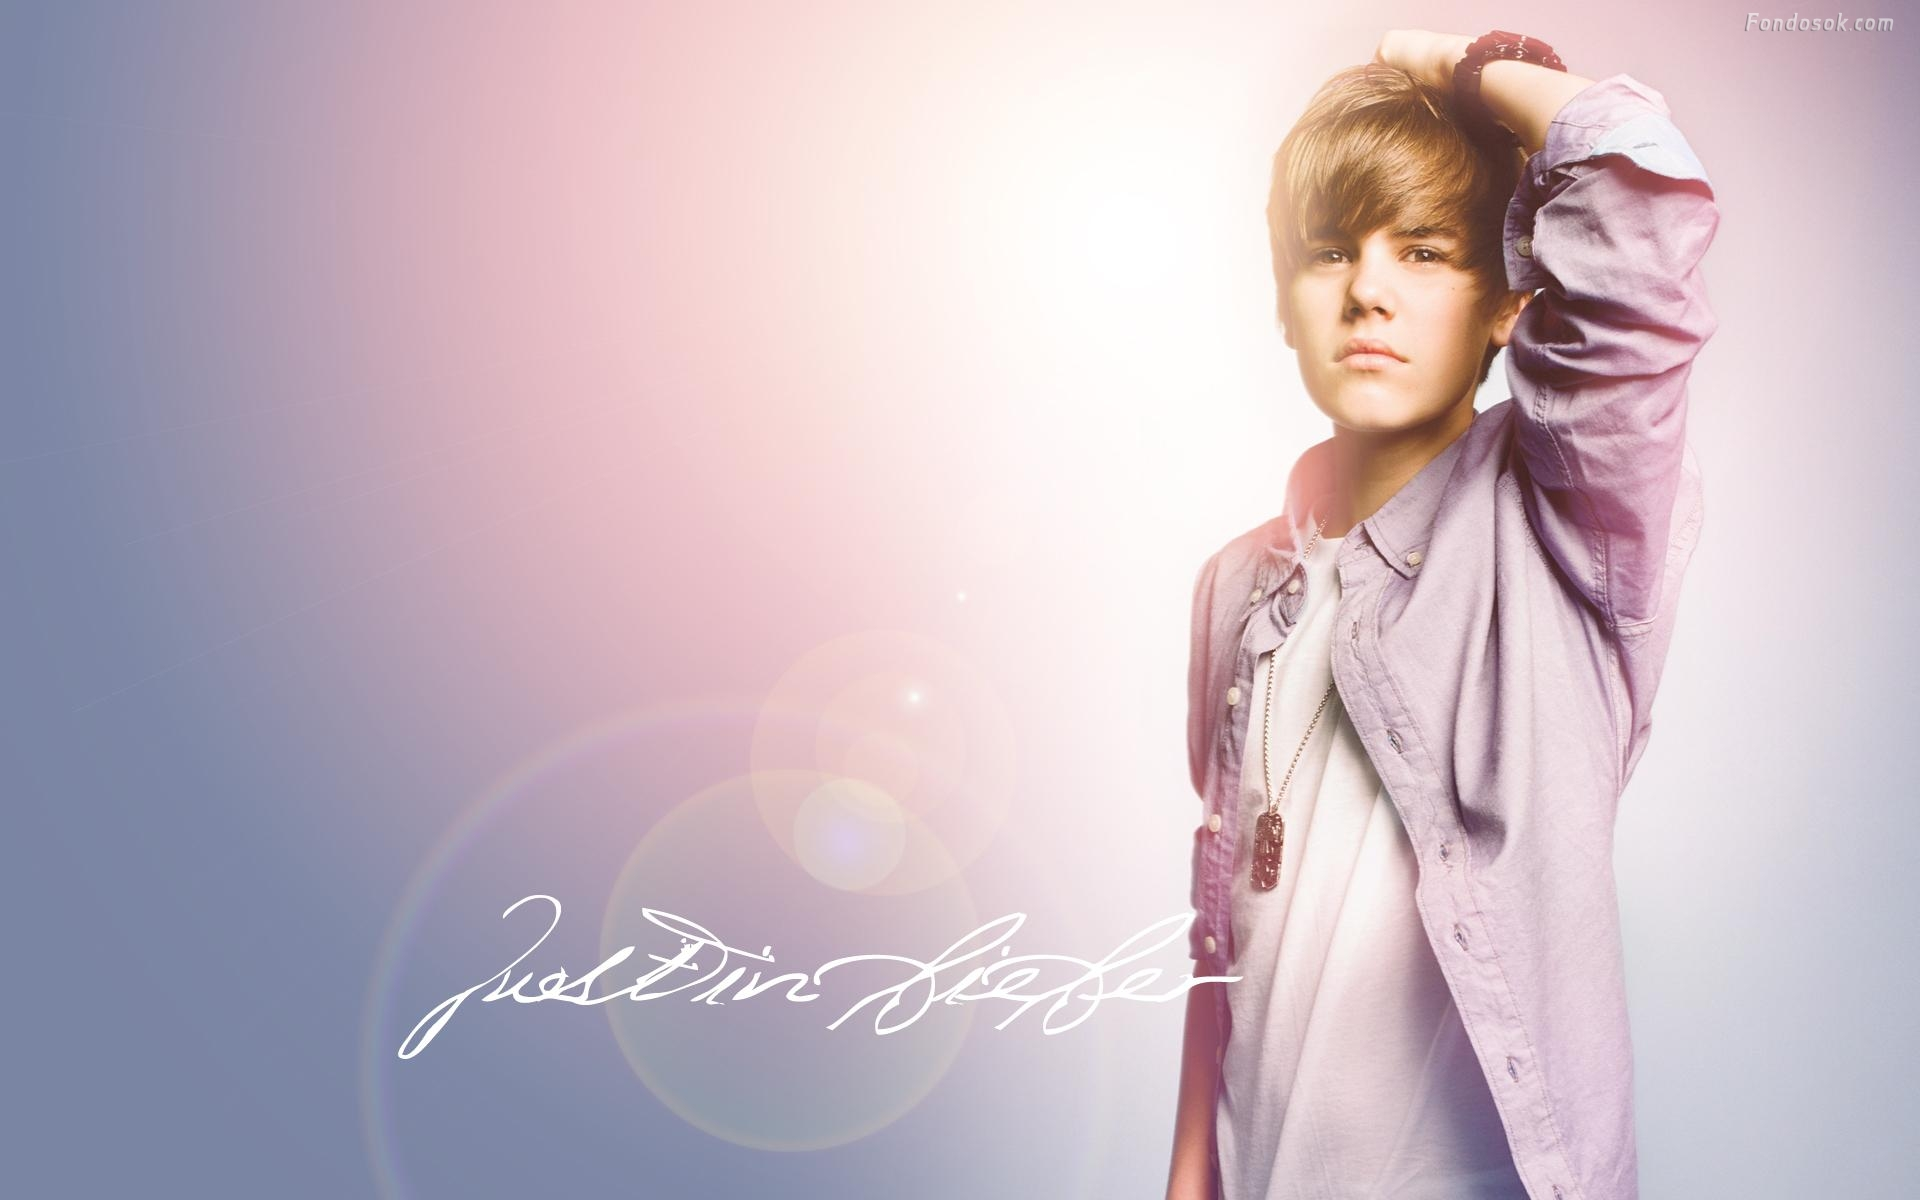 Justin Bieber Wallpaper Iphone Android